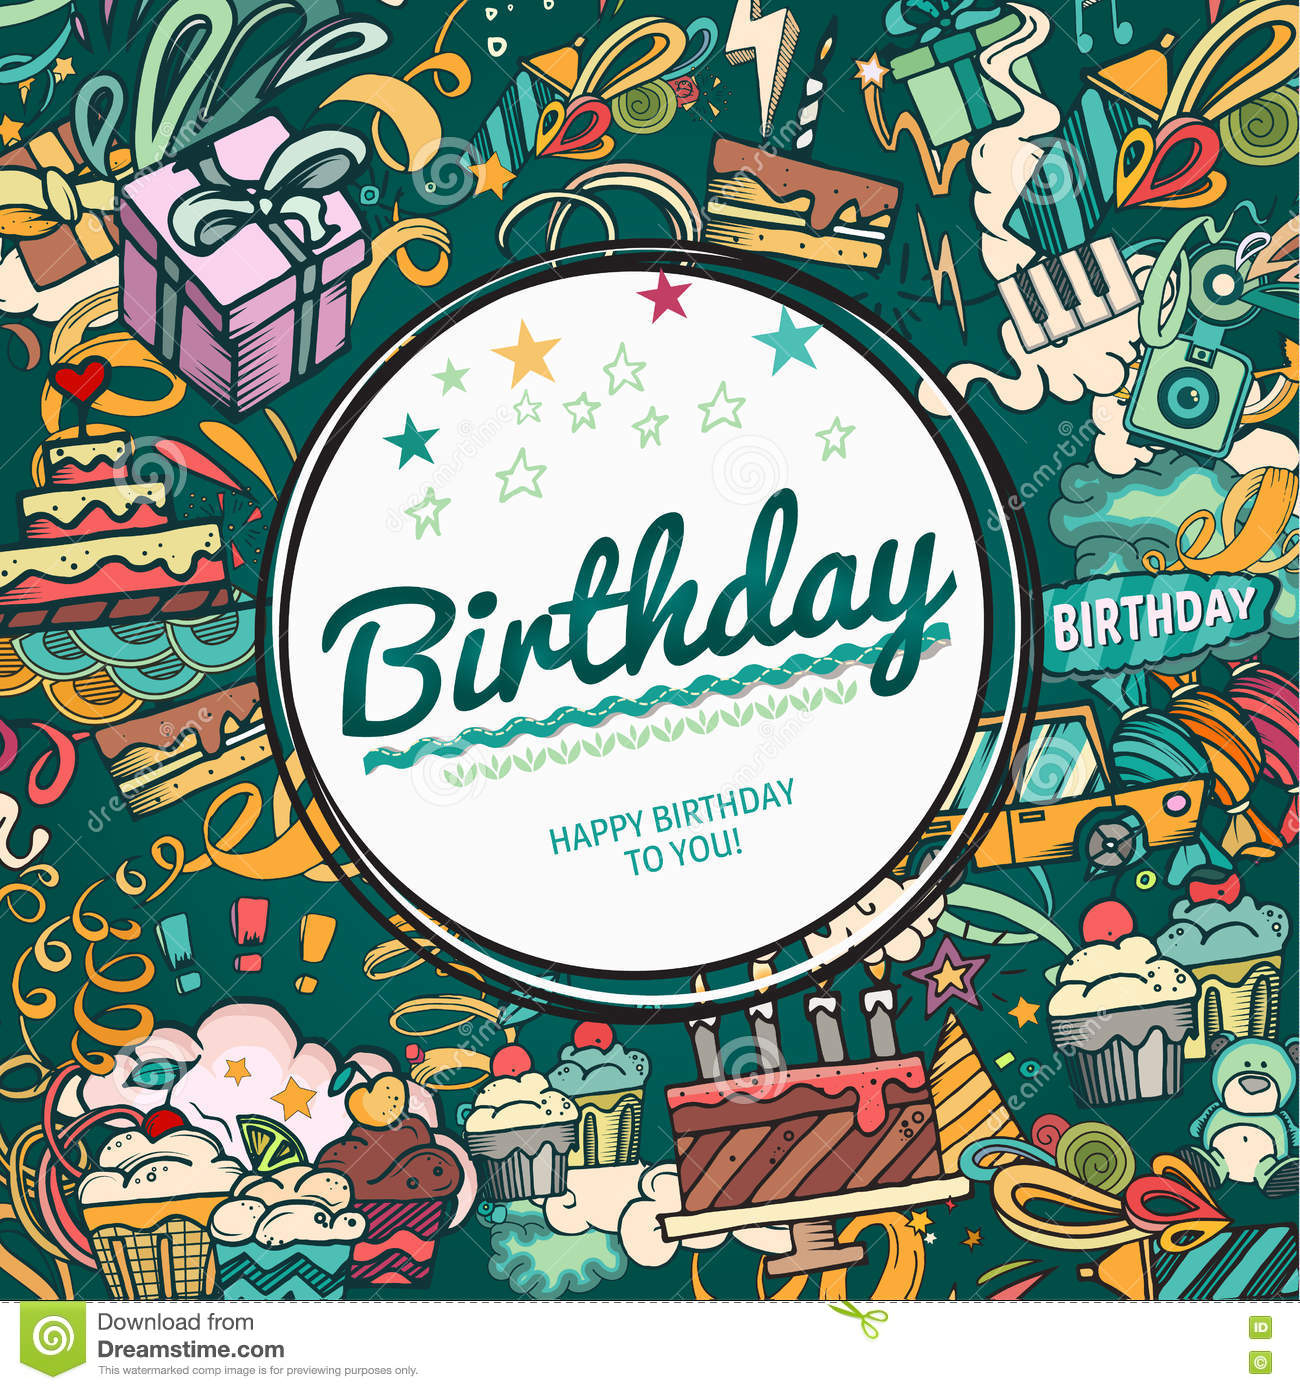 Birthday photo frame stock vector. Illustration of camera - 21 Within Birthday Card Collage Template